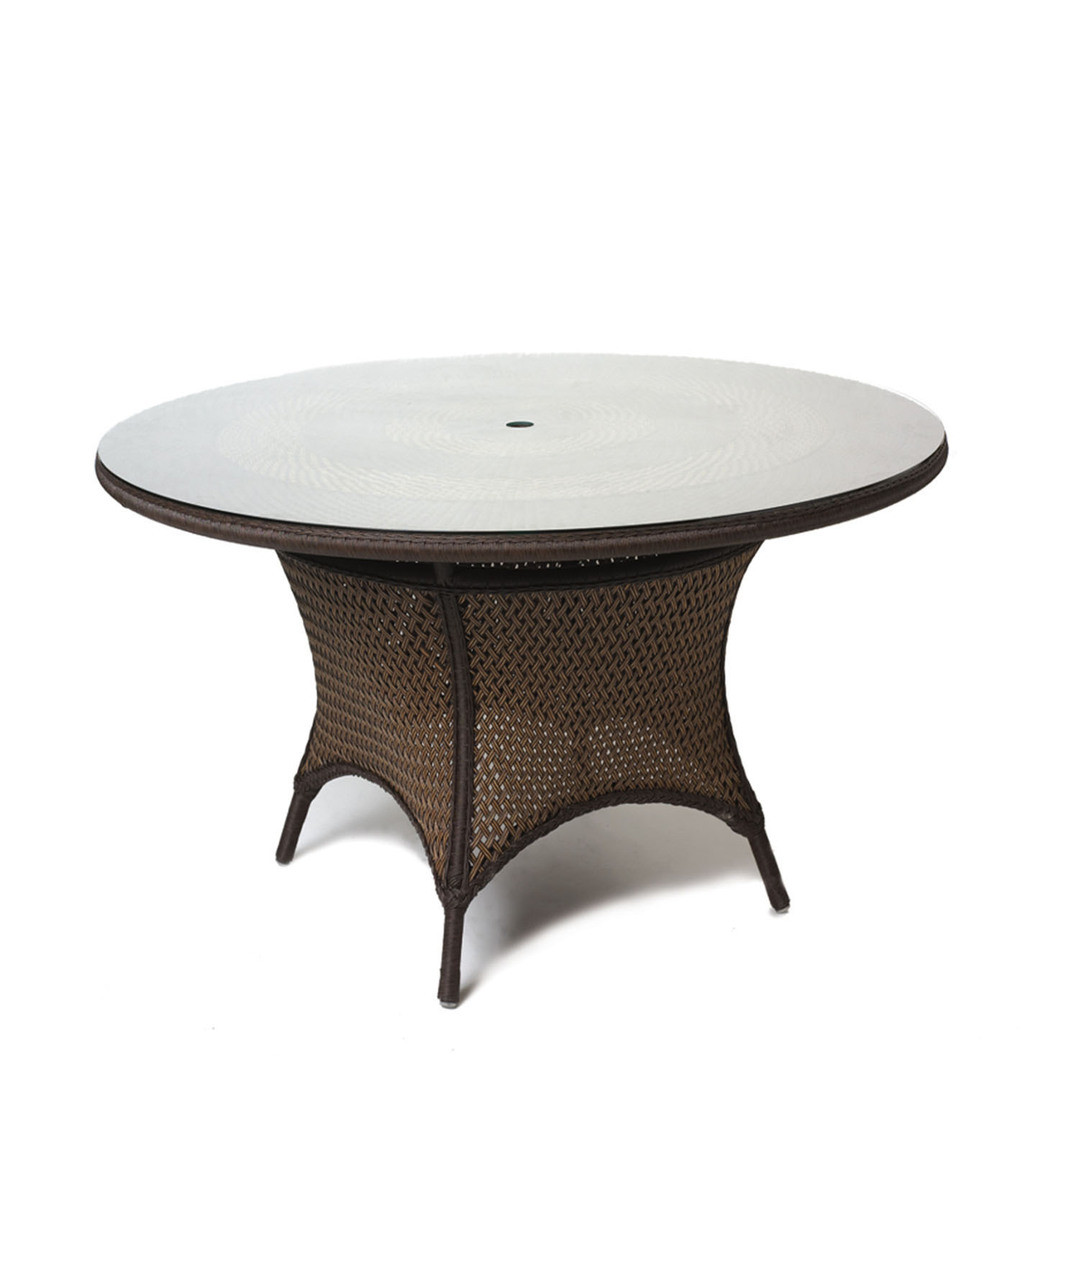 Stupendous Lloyd Flanders Grand Traverse 48 Inch Round Wicker Umbrella Dining Table With Lay On Glass Download Free Architecture Designs Photstoregrimeyleaguecom